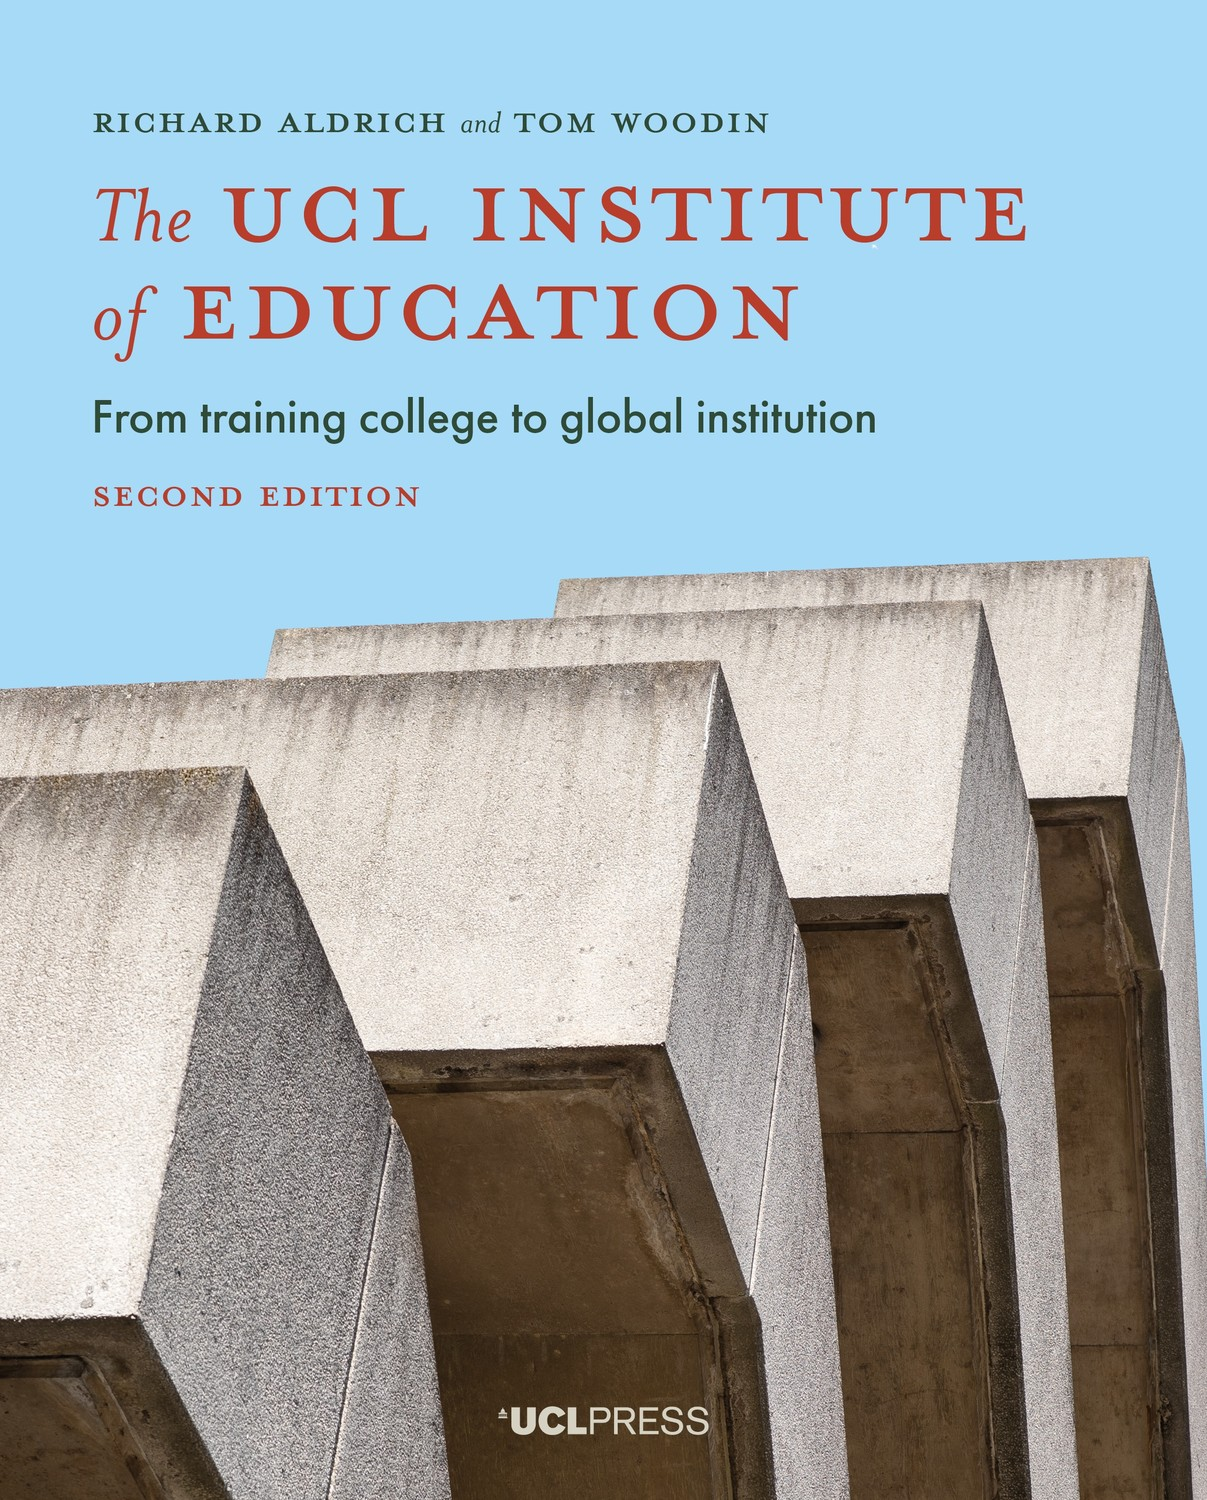 The UCL Institute of Education